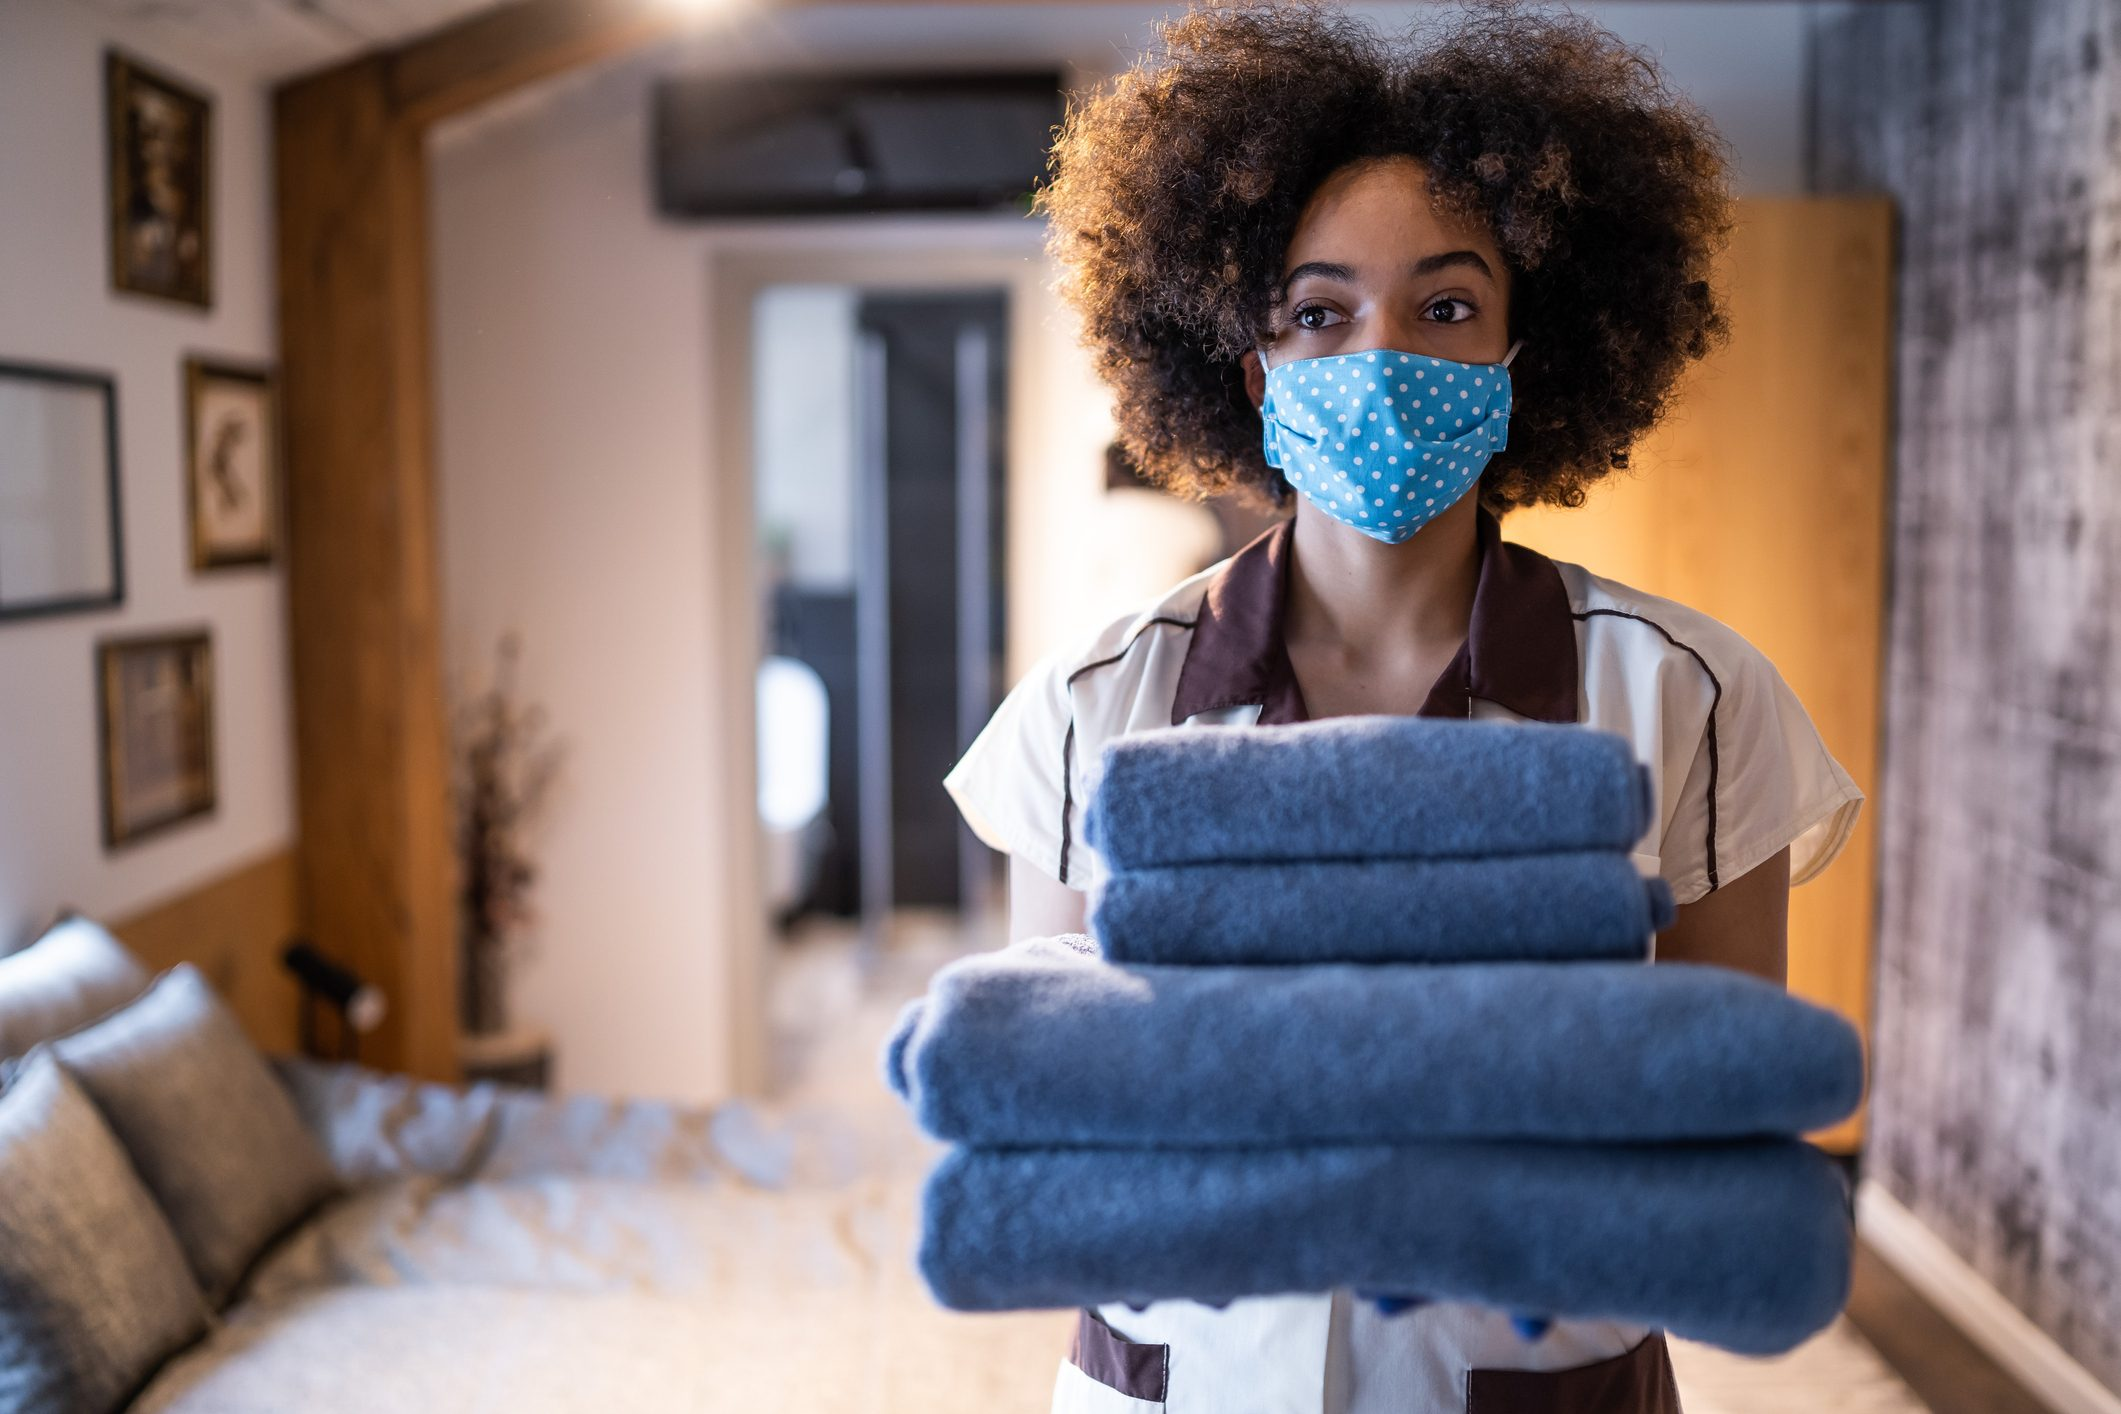 Maid working at a hotel wearing a protective face mask, during COVID-19